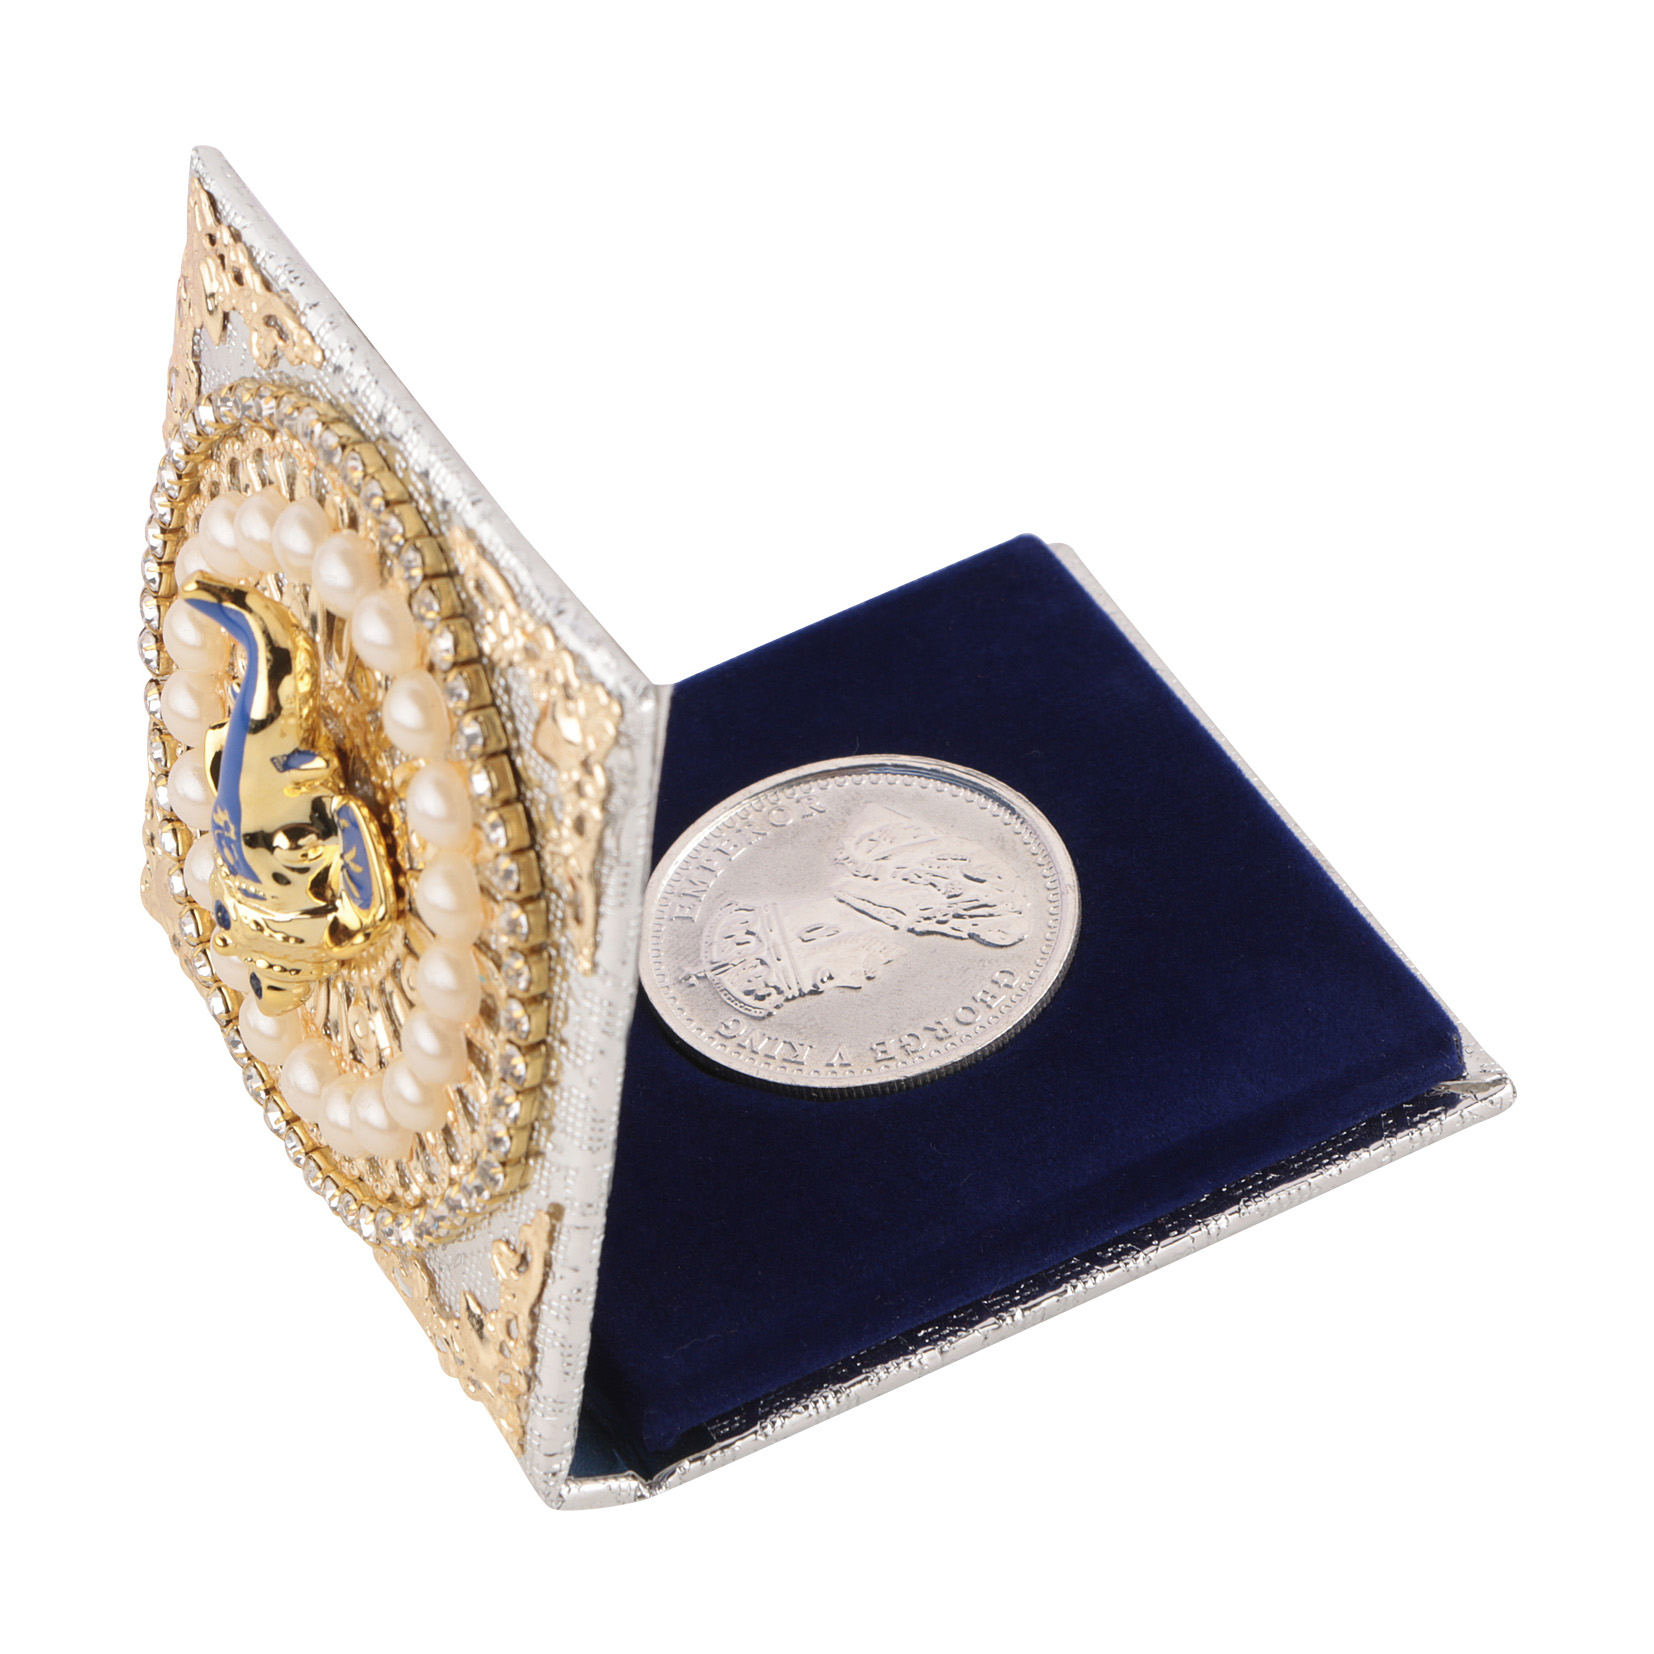 Silver Coin Round with Designer Ganesh ji Packing - Pack of